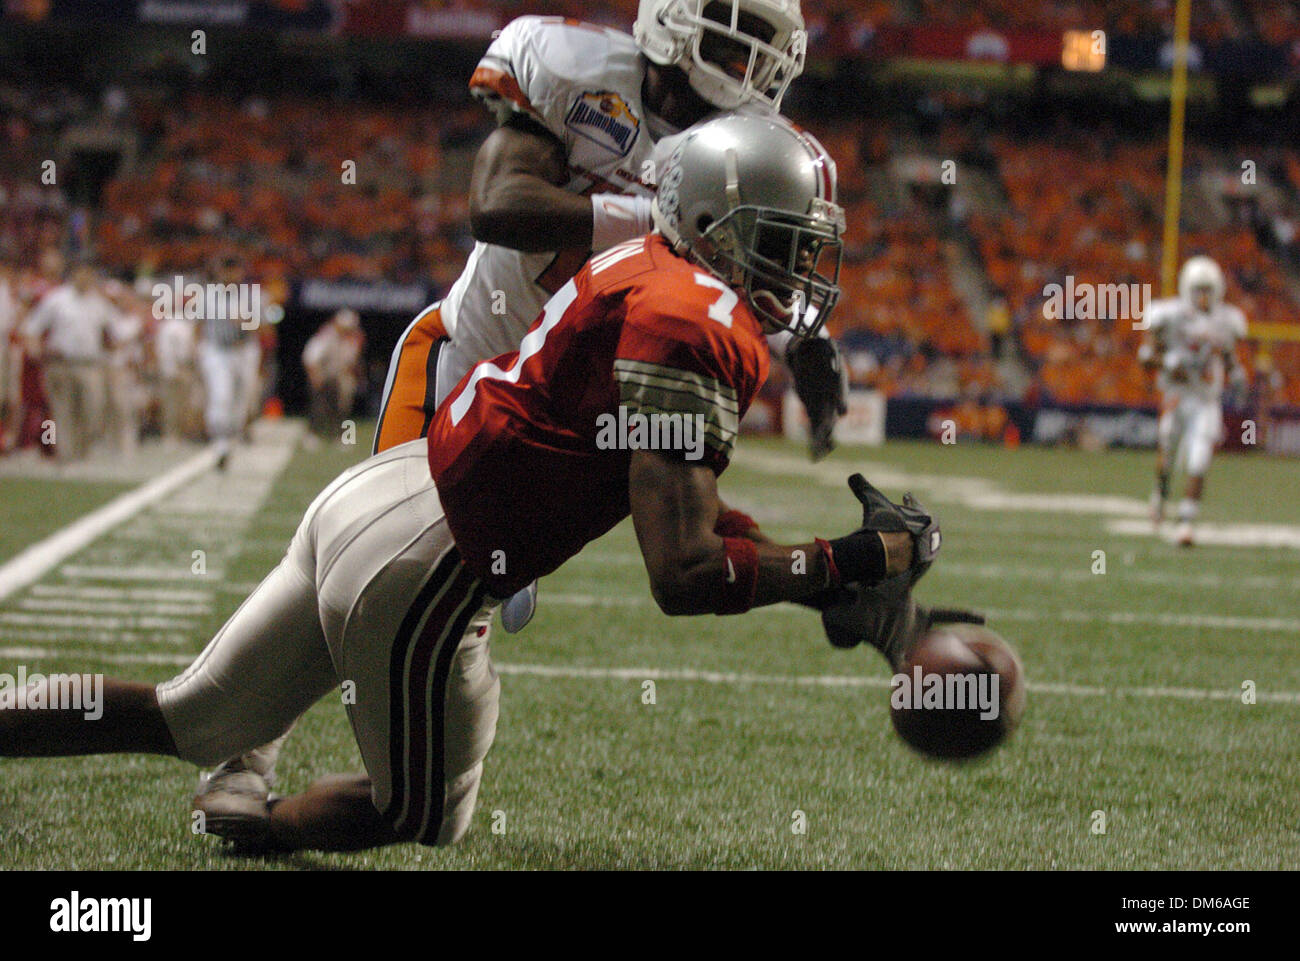 Dec 29, 2004; San Antonio, TX, USA; NCAA Football - Oklahmoaa States' Daniel McLemore (top)is called for pass interference as he has contact with Ohio State's Ted Ginn during the 2004 MasterCard Alamo Bowl in the Alamo Dome in San Antonio. - Stock Image